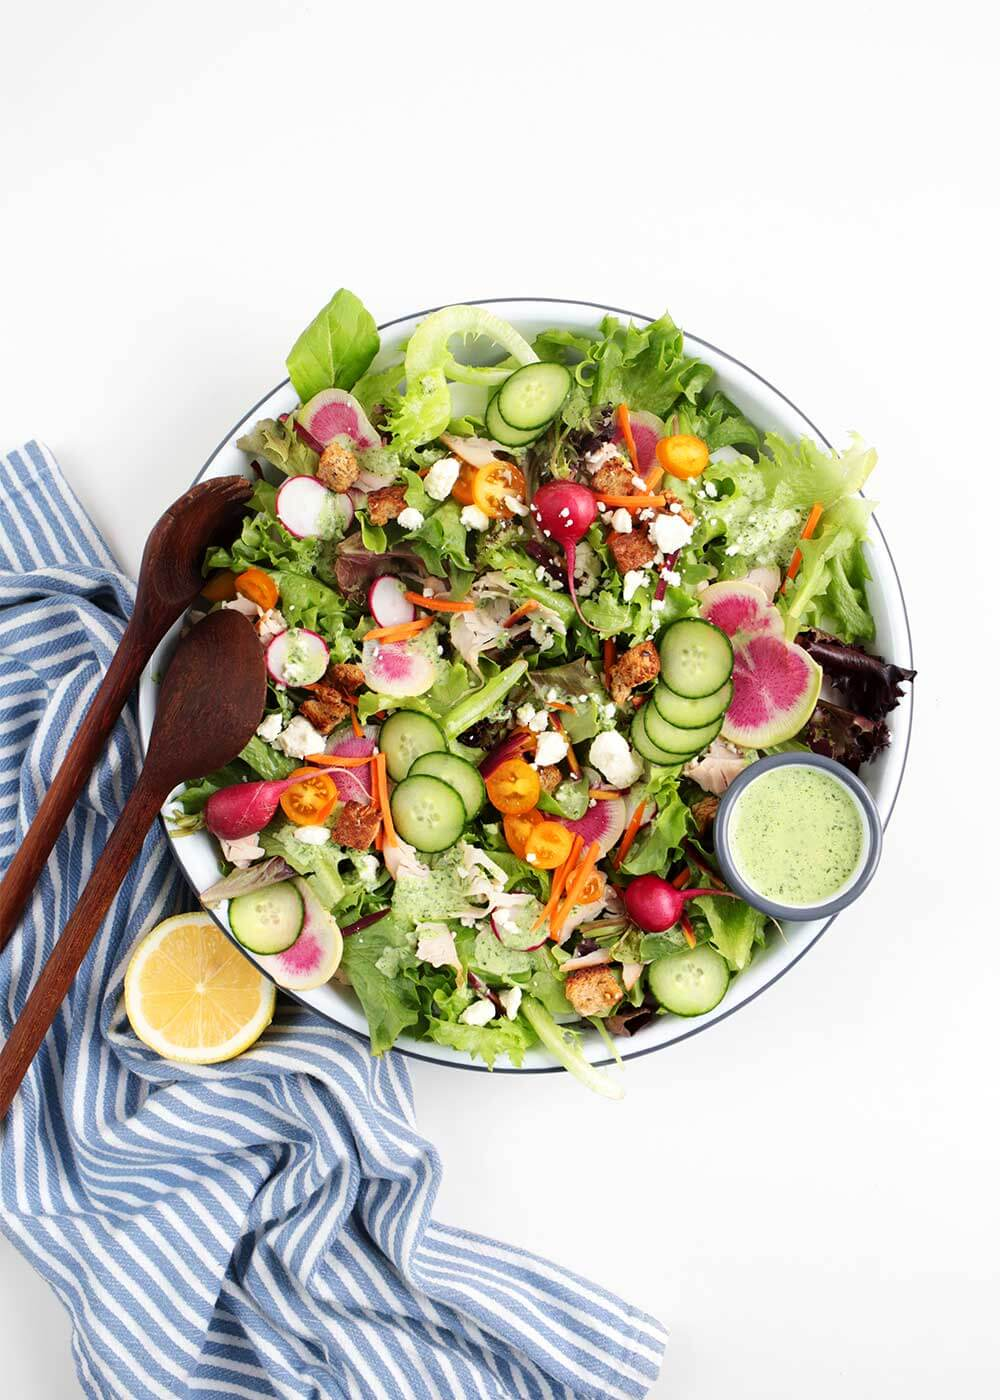 green goddess salad from the faux martha